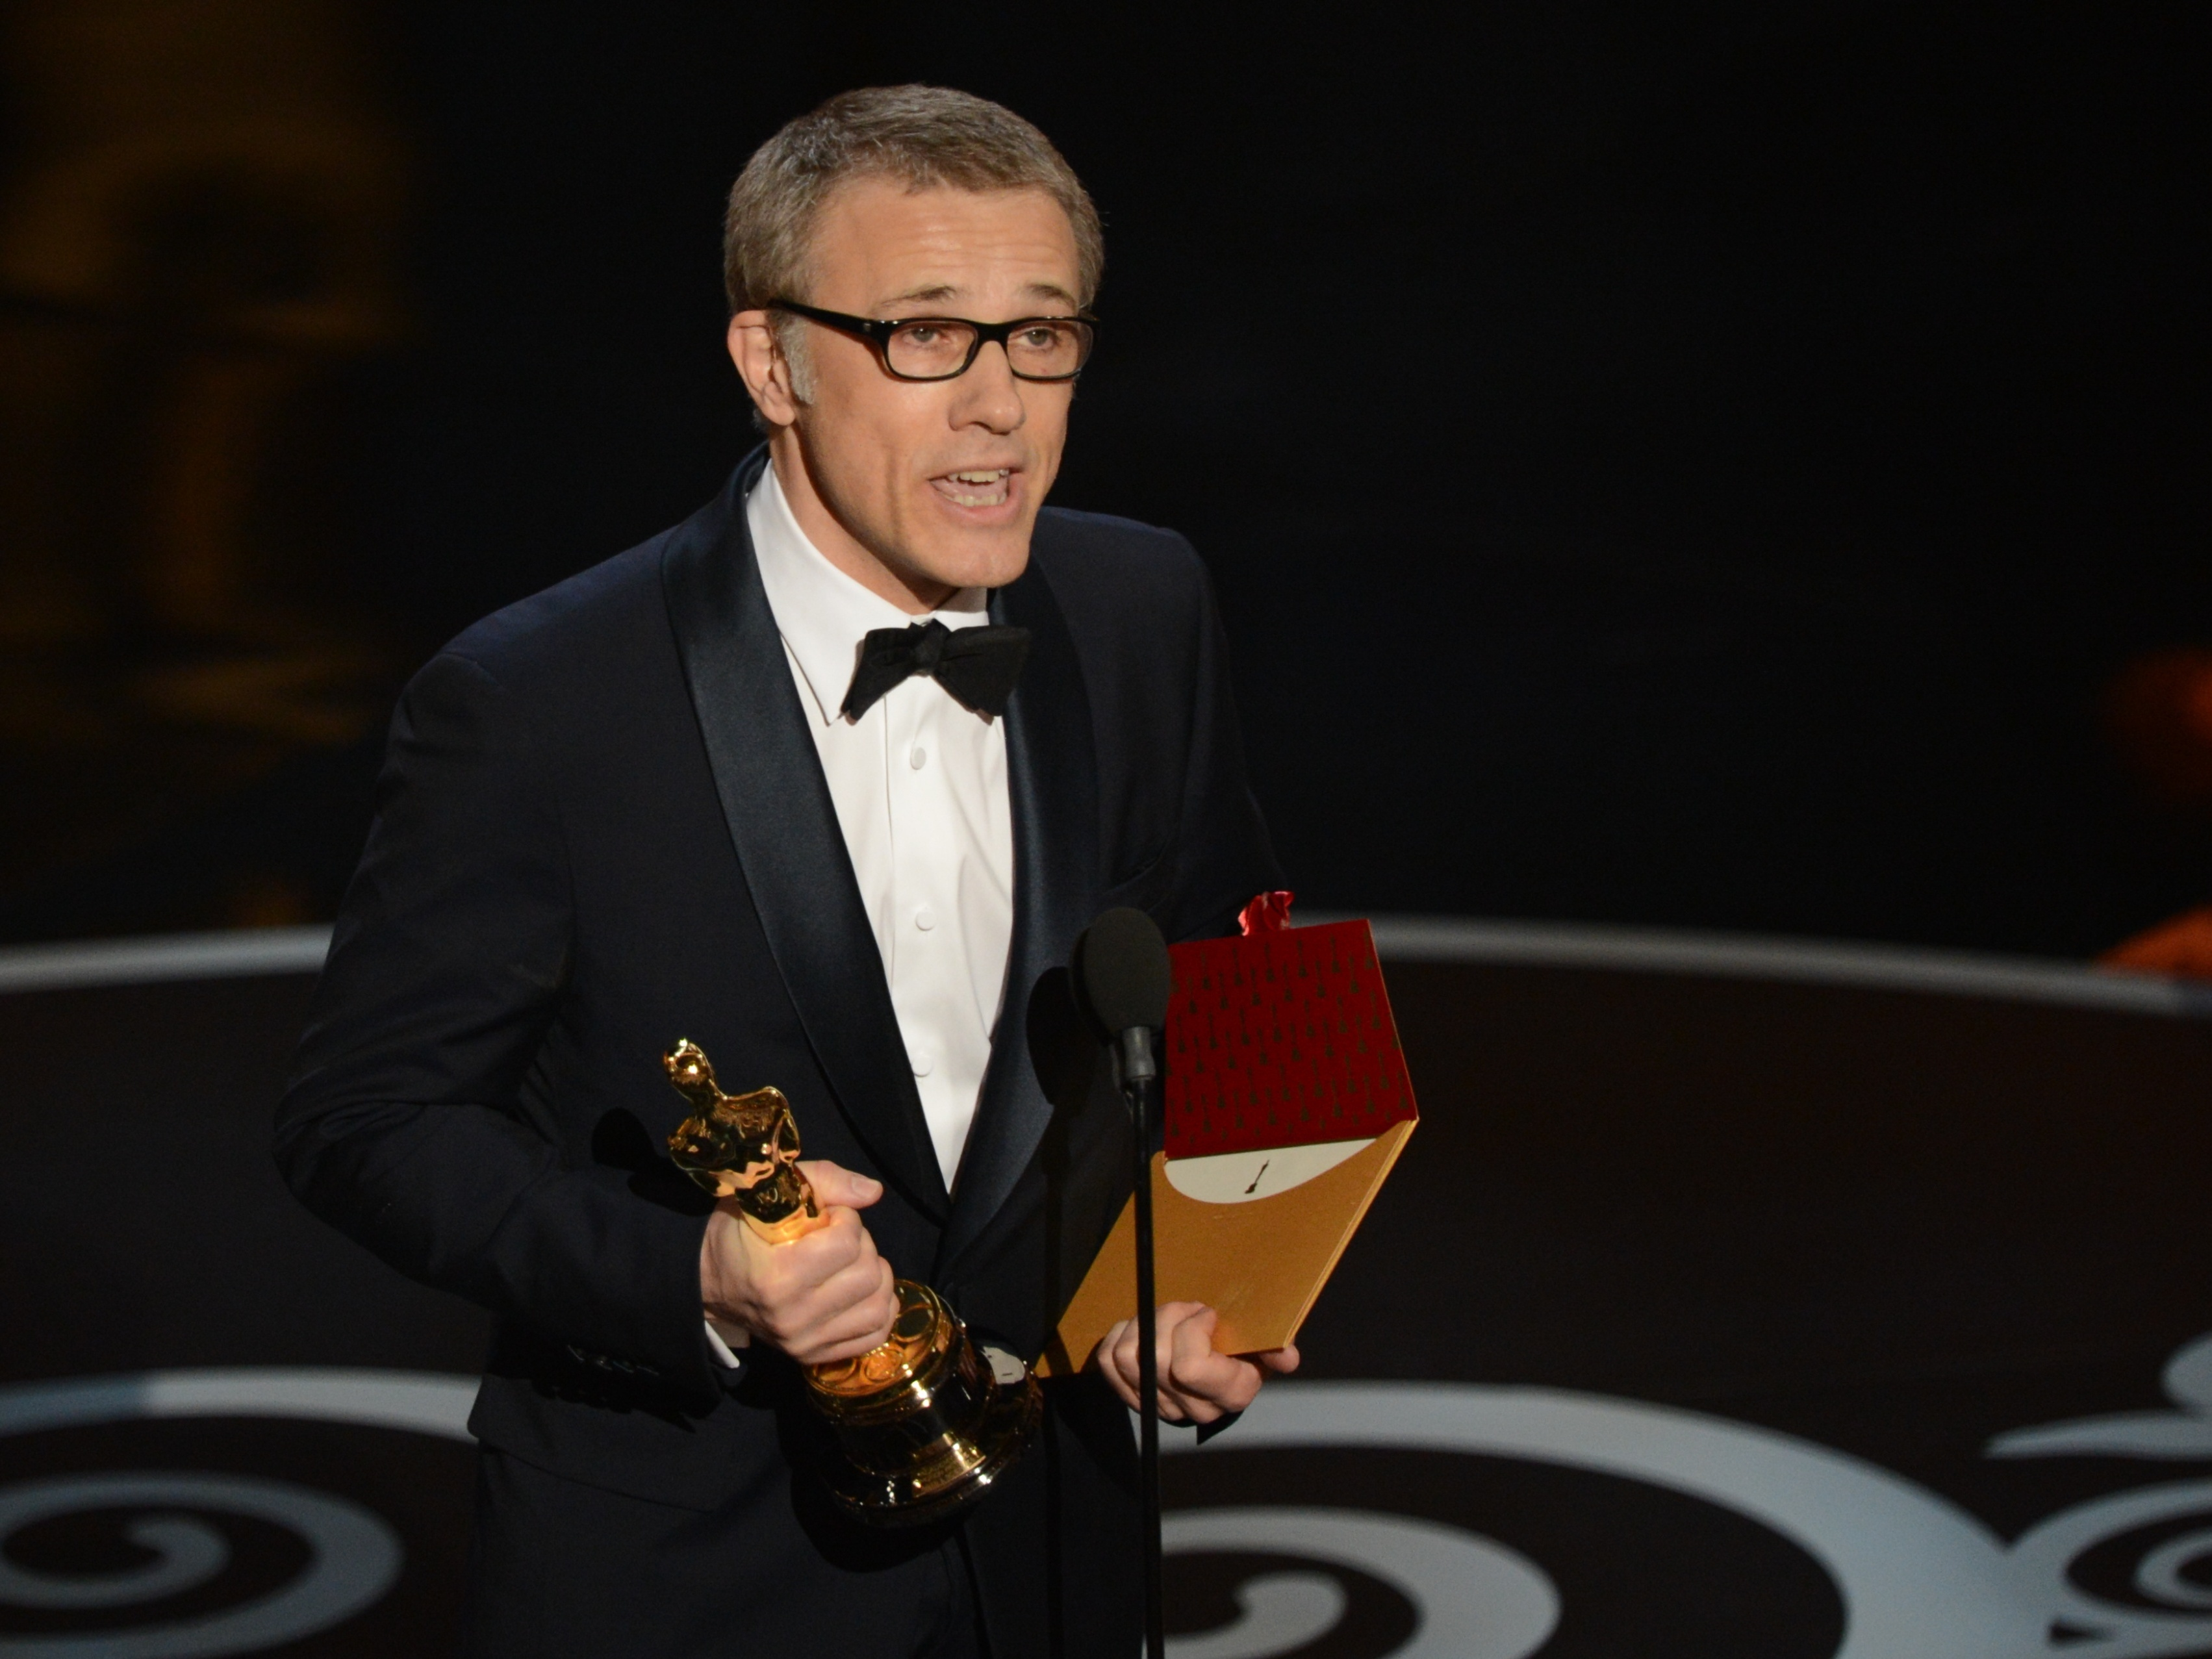 Christoph Waltz accepts the Oscar for best supporting actor in Django Unchained.